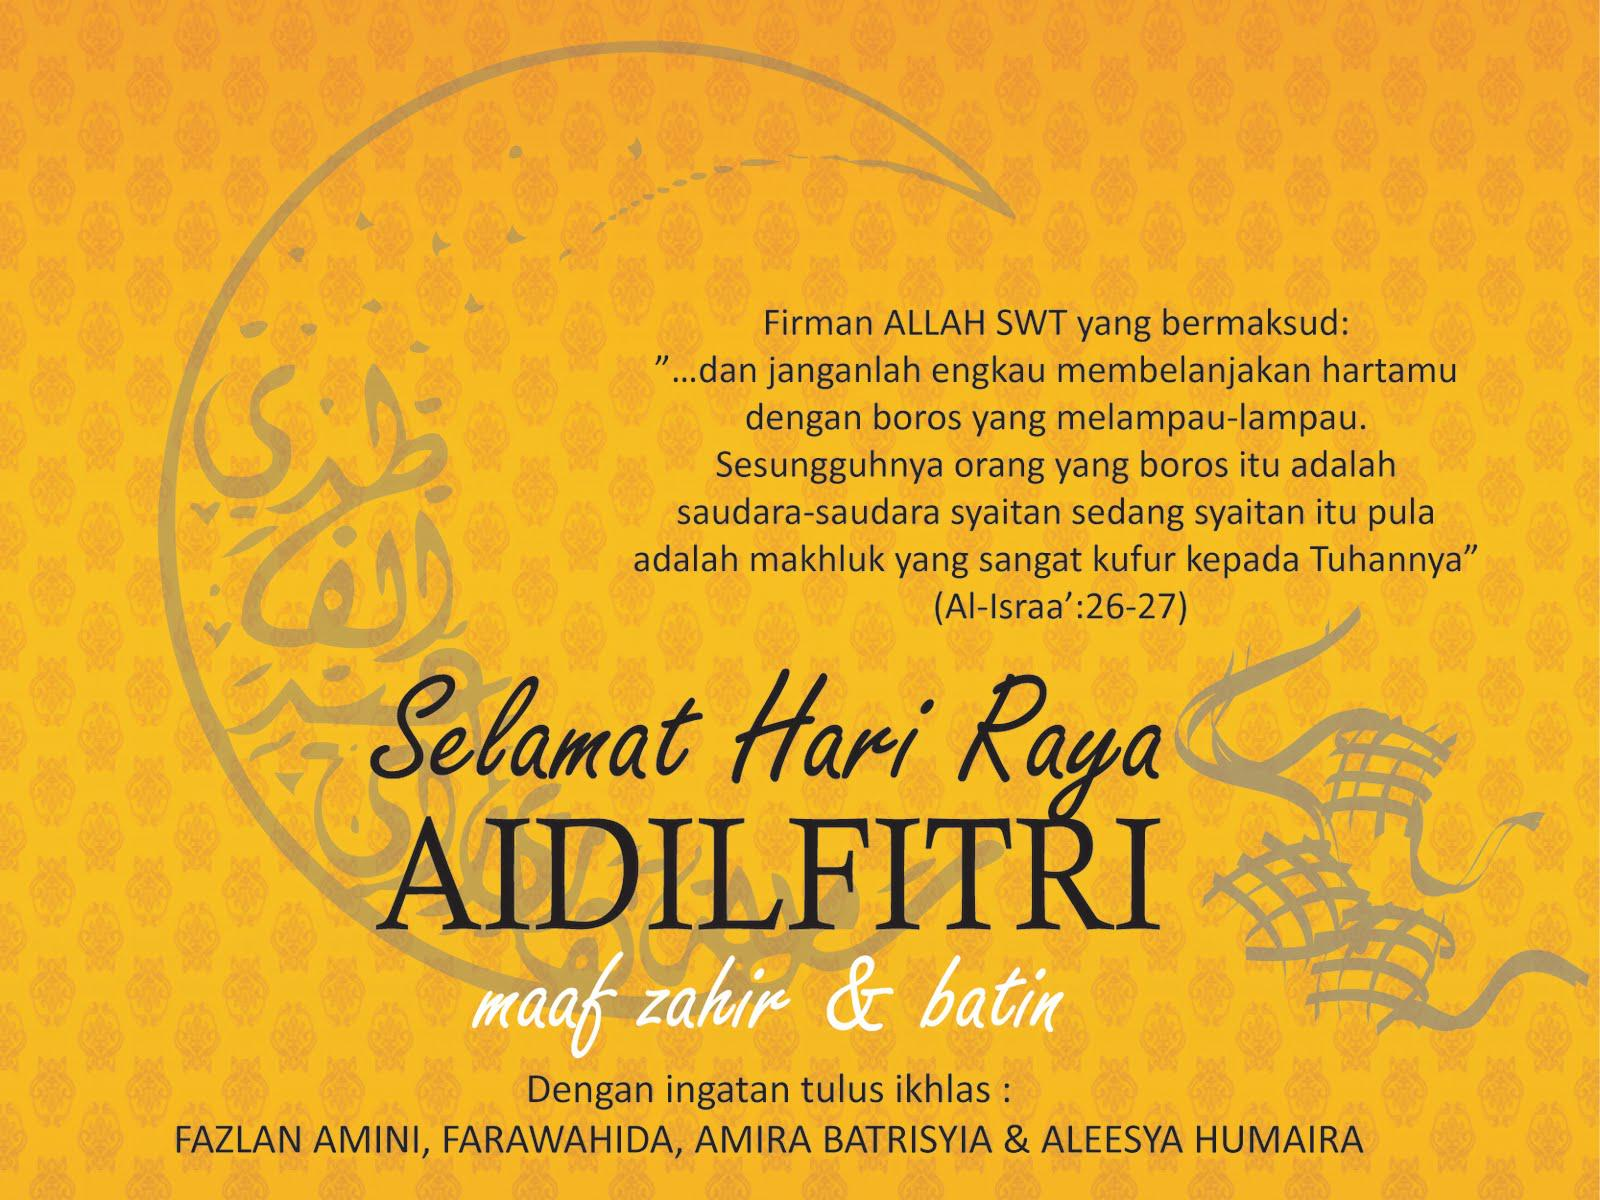 Free Wallpapers and Backgrounds for Hari Raya Aidilfitri